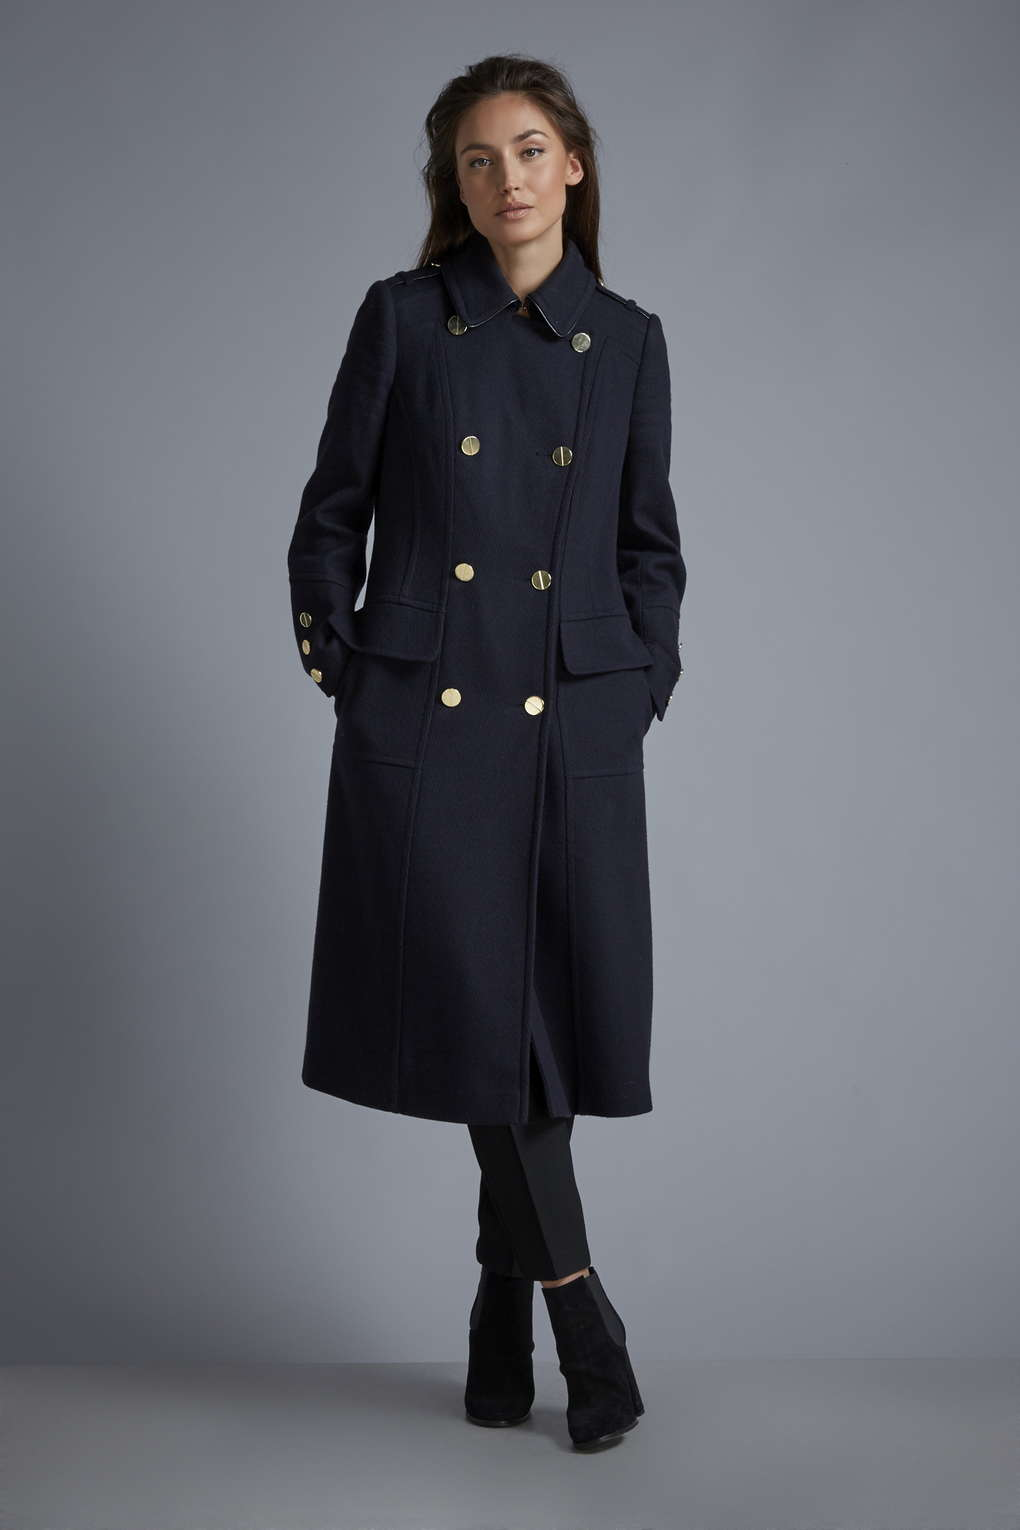 The jacket was design to be longer, to cover the backside, but short enough for the sailors to climb and move about. Unchanged for over years, the basic Navy peacoat has everything a person wants in a jacket: function, durability, and esthetics.